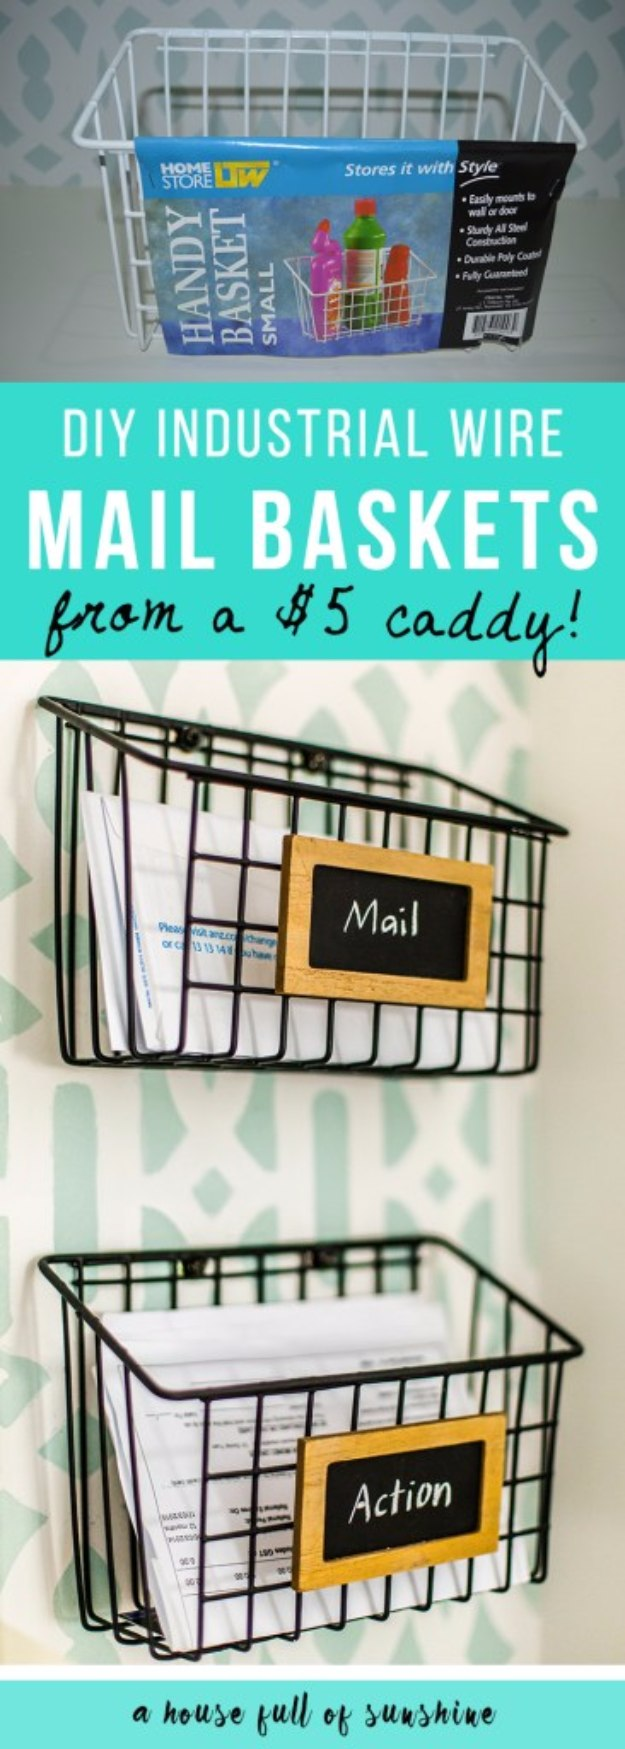 DIY Home Office Decor Ideas - DIY Industrial Wire Mail Baskets - Do It Yourself Desks, Tables, Wall Art, Chairs, Rugs, Seating and Desk Accessories for Your Home Office #office #diydecor #diy